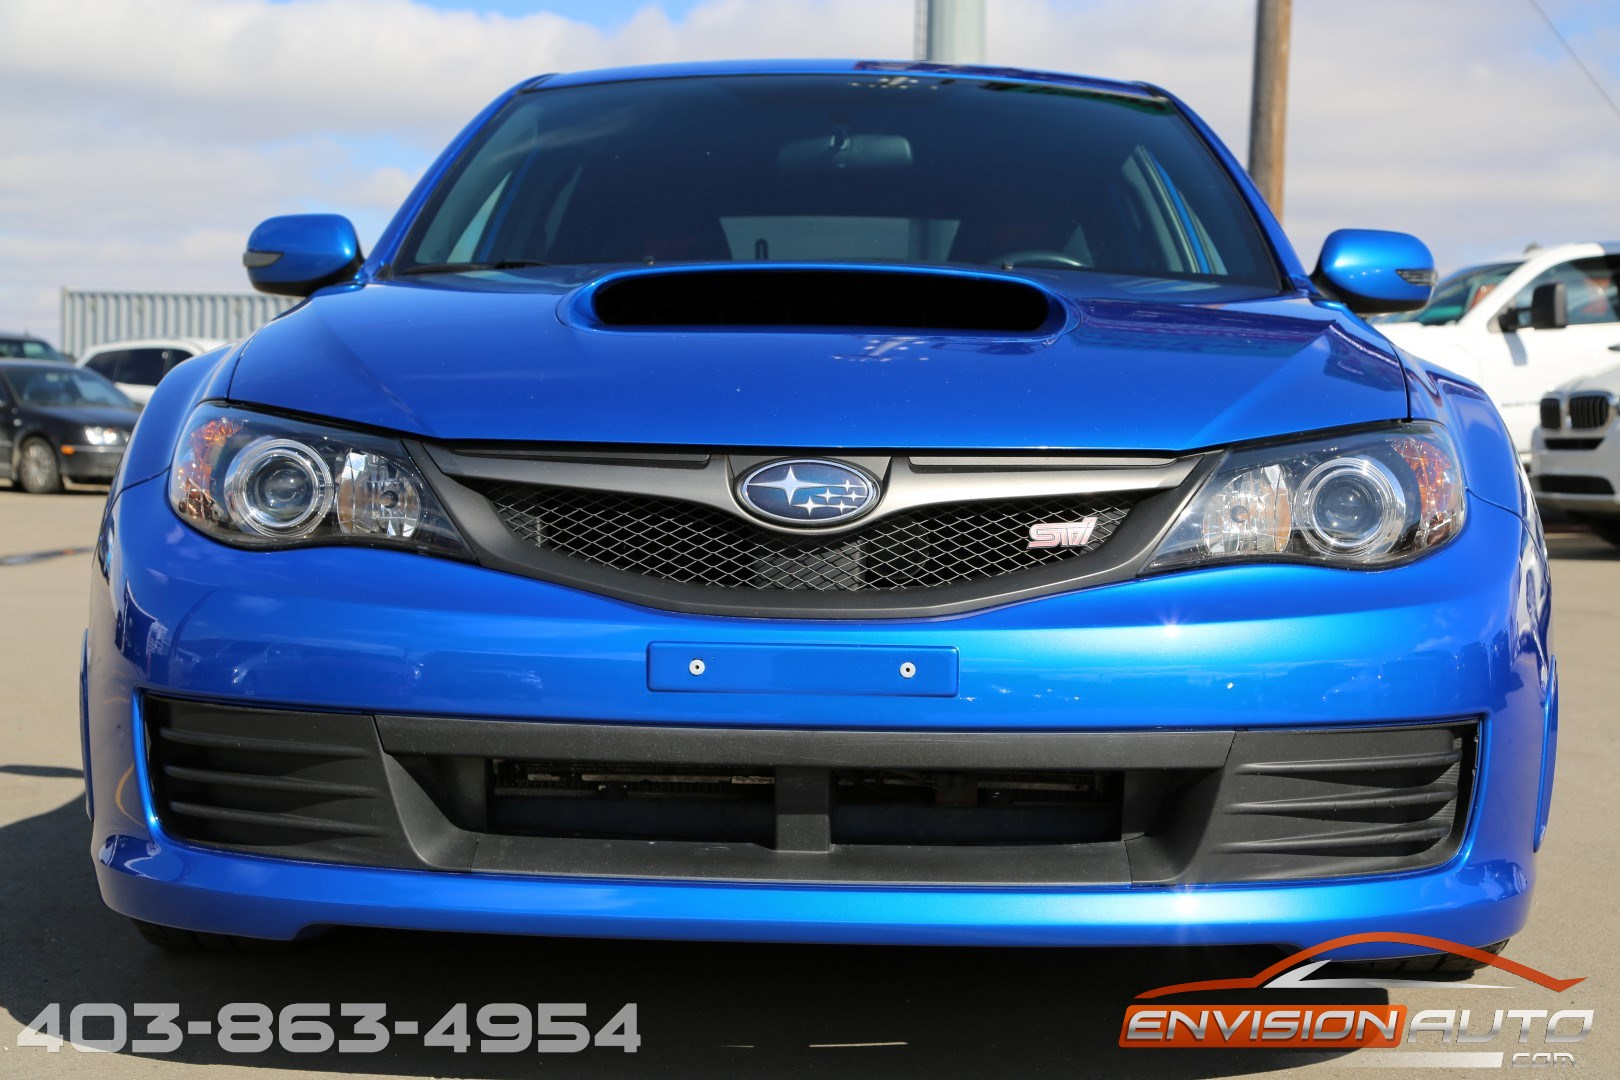 2010 subaru impreza wrx sti custom built engine only 90kms envision auto calgary. Black Bedroom Furniture Sets. Home Design Ideas